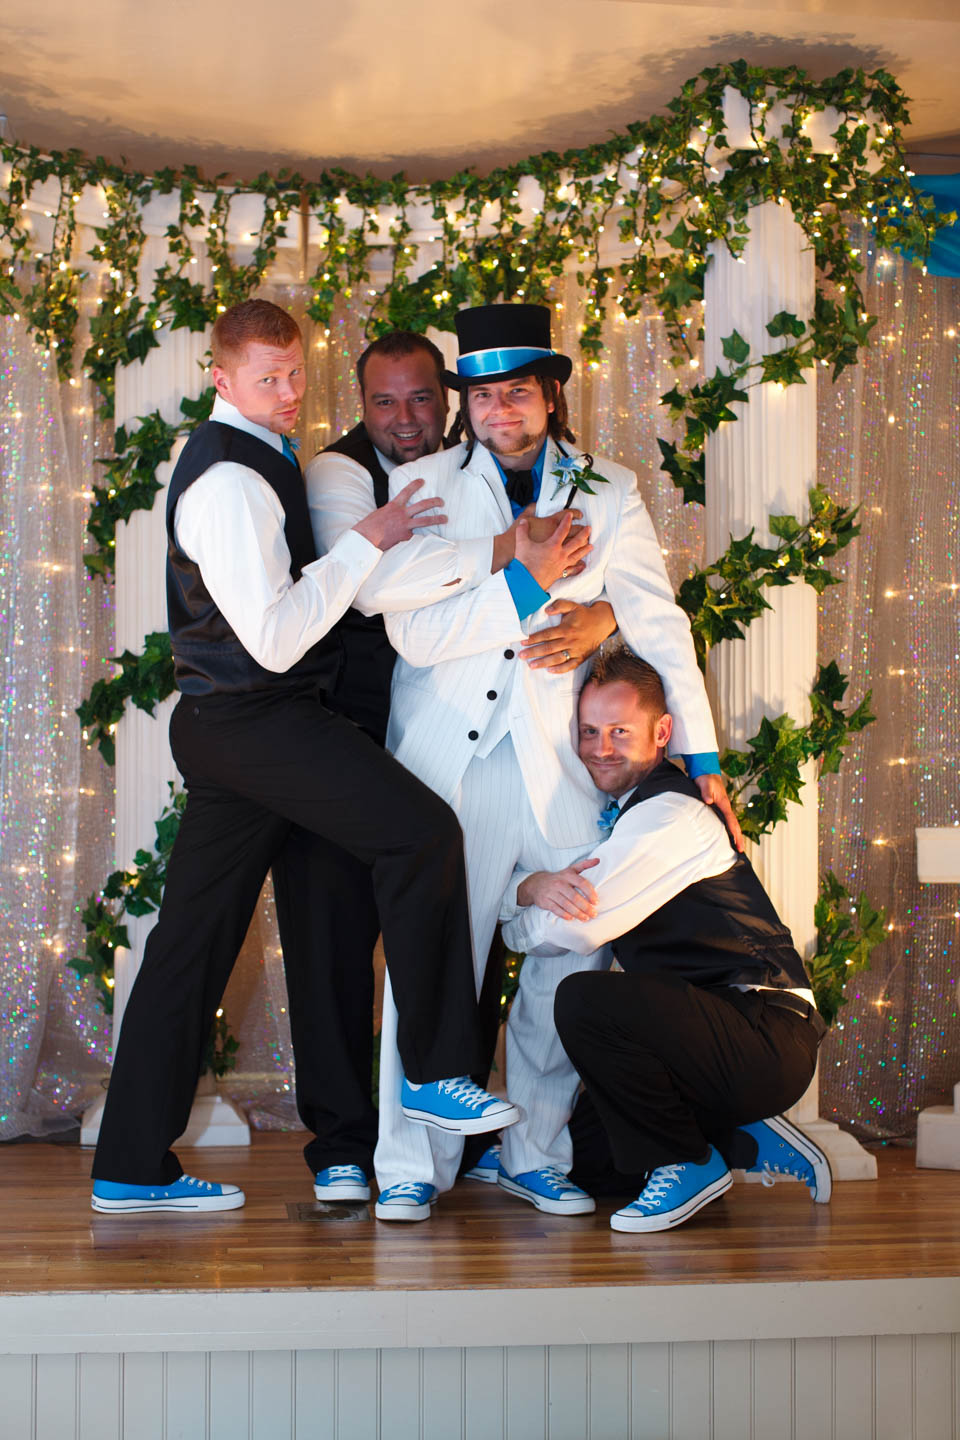 Stan is all cuddly with the groomsmen